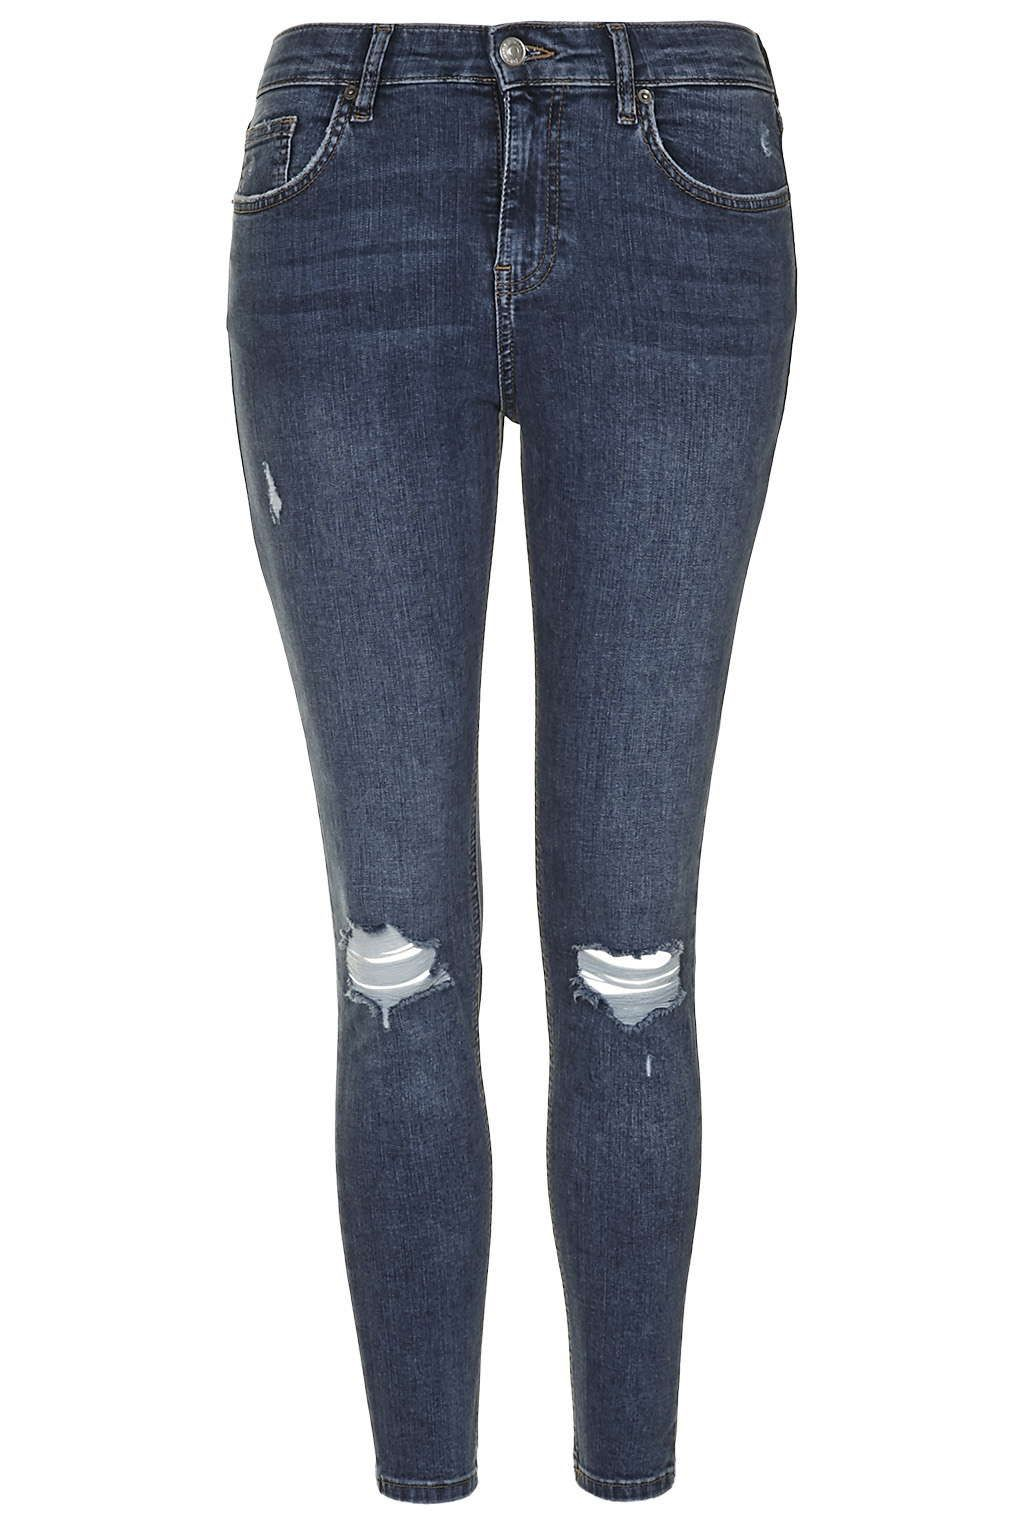 723db4ed27d PETITE MOTO Ripped Jamie Jeans - Topshop USA | READY TO WEAR | Jeans ...